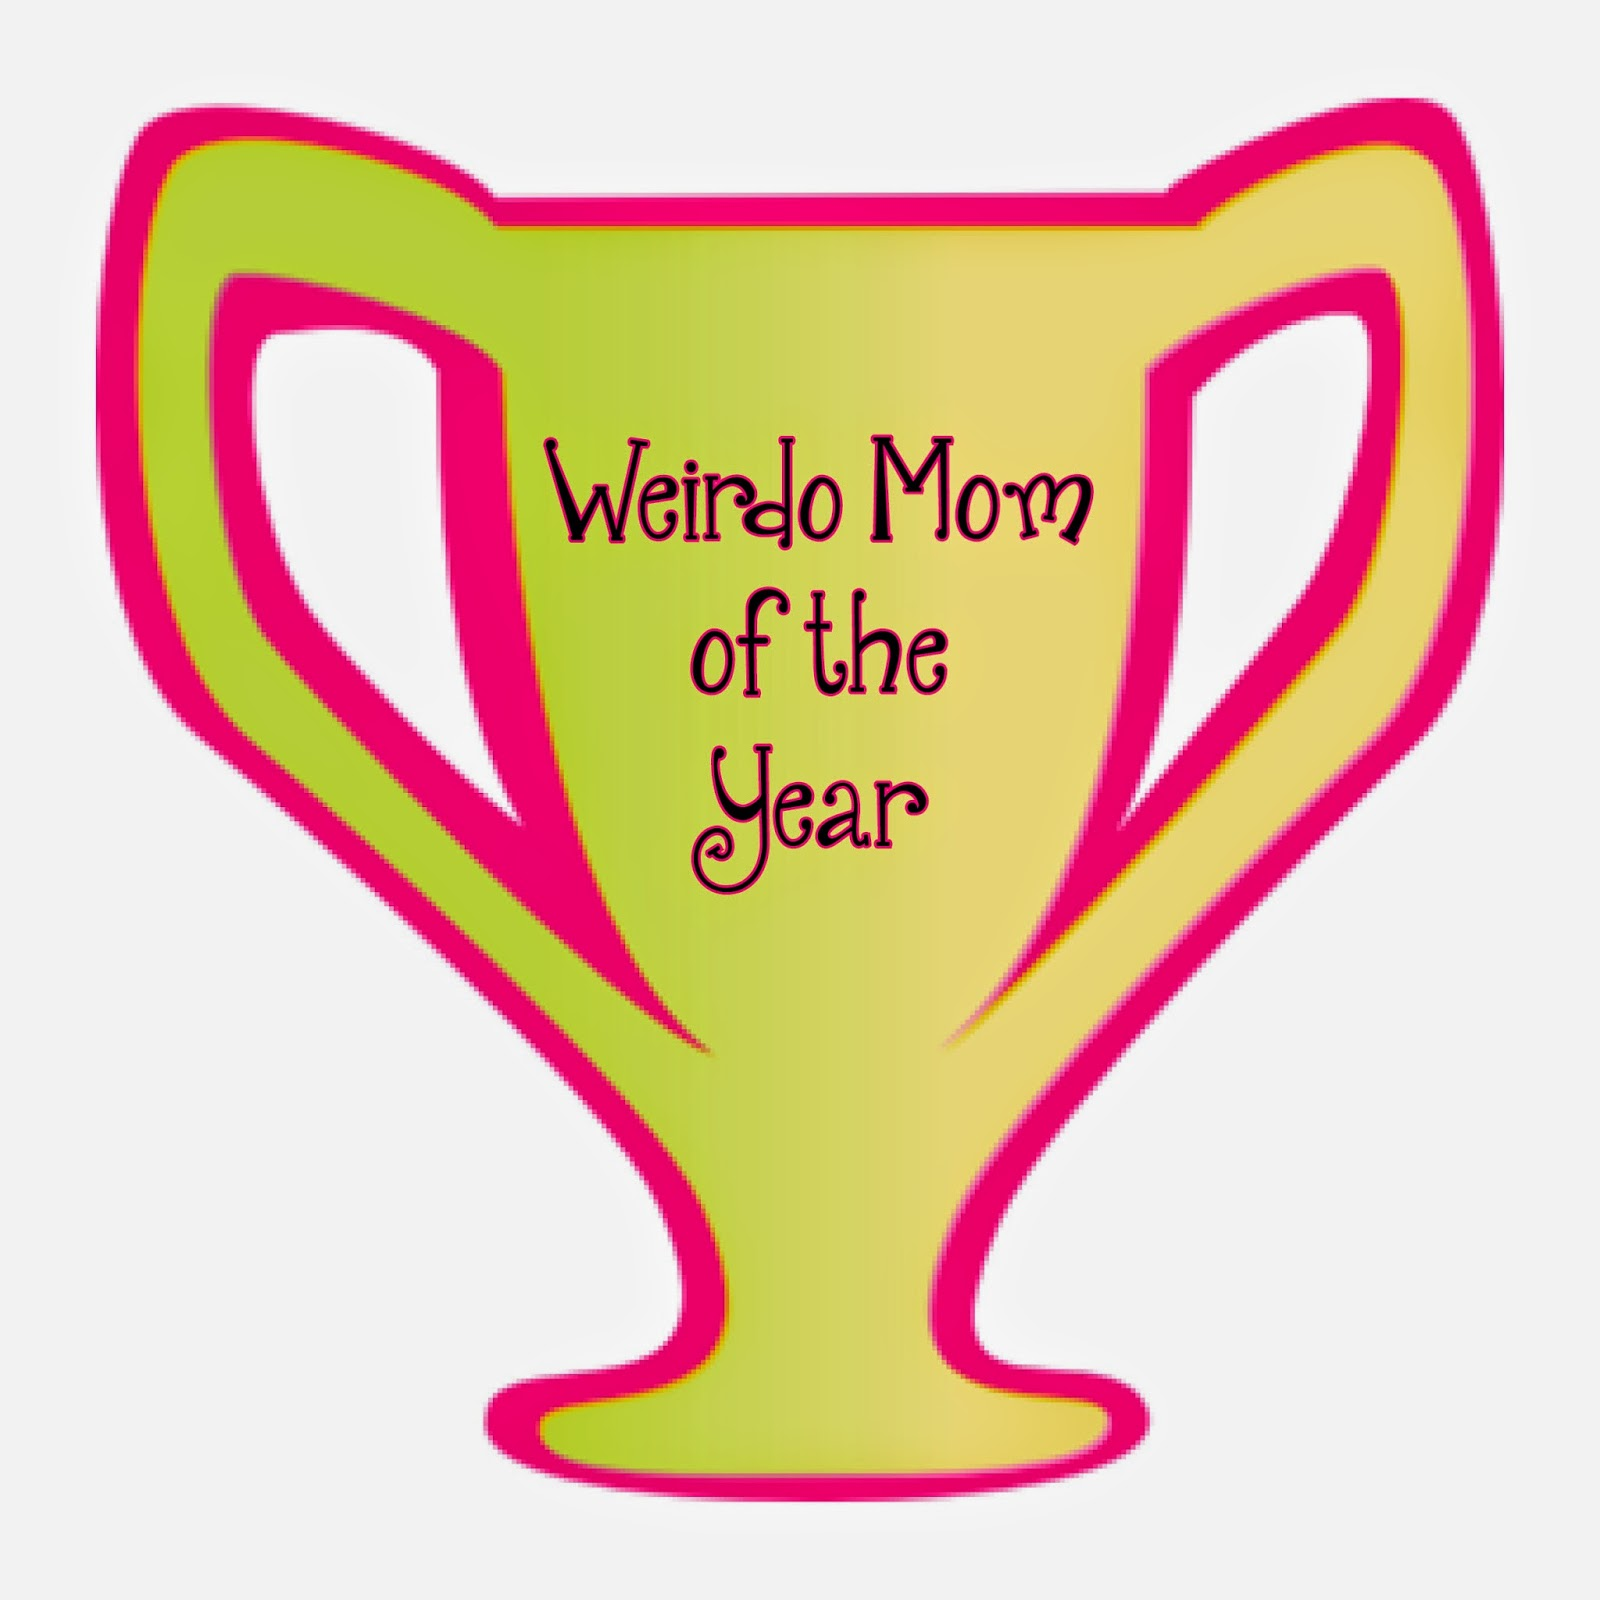 Weirdo mom trophy - Tales from a 3 year old ~ thequirkyconfessions.com